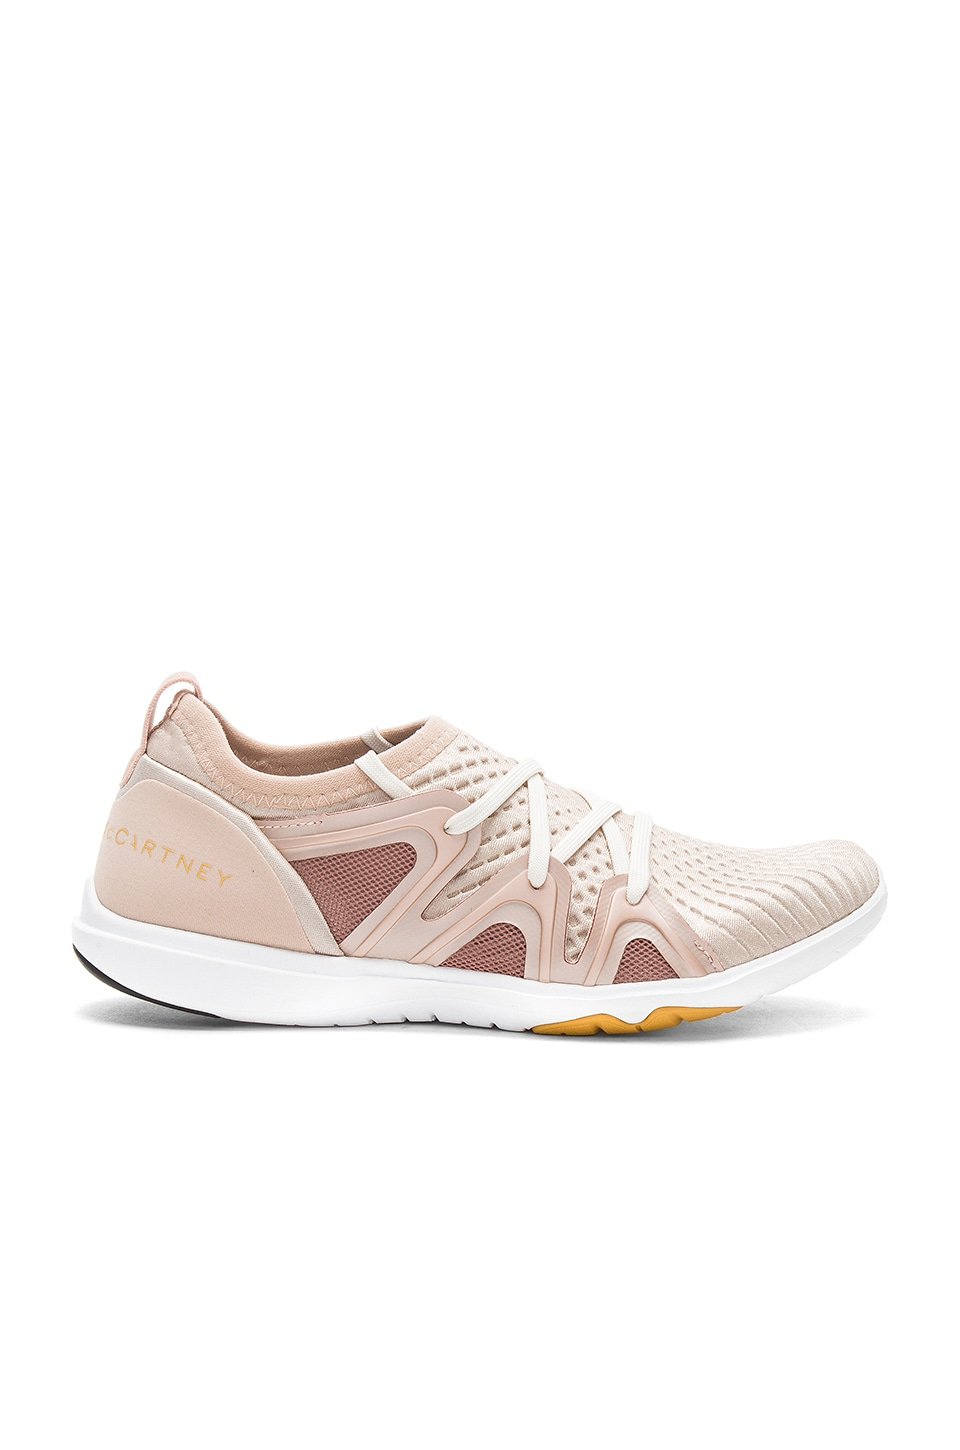 Crazymove Pro Sneaker by adidas by Stella McCartney